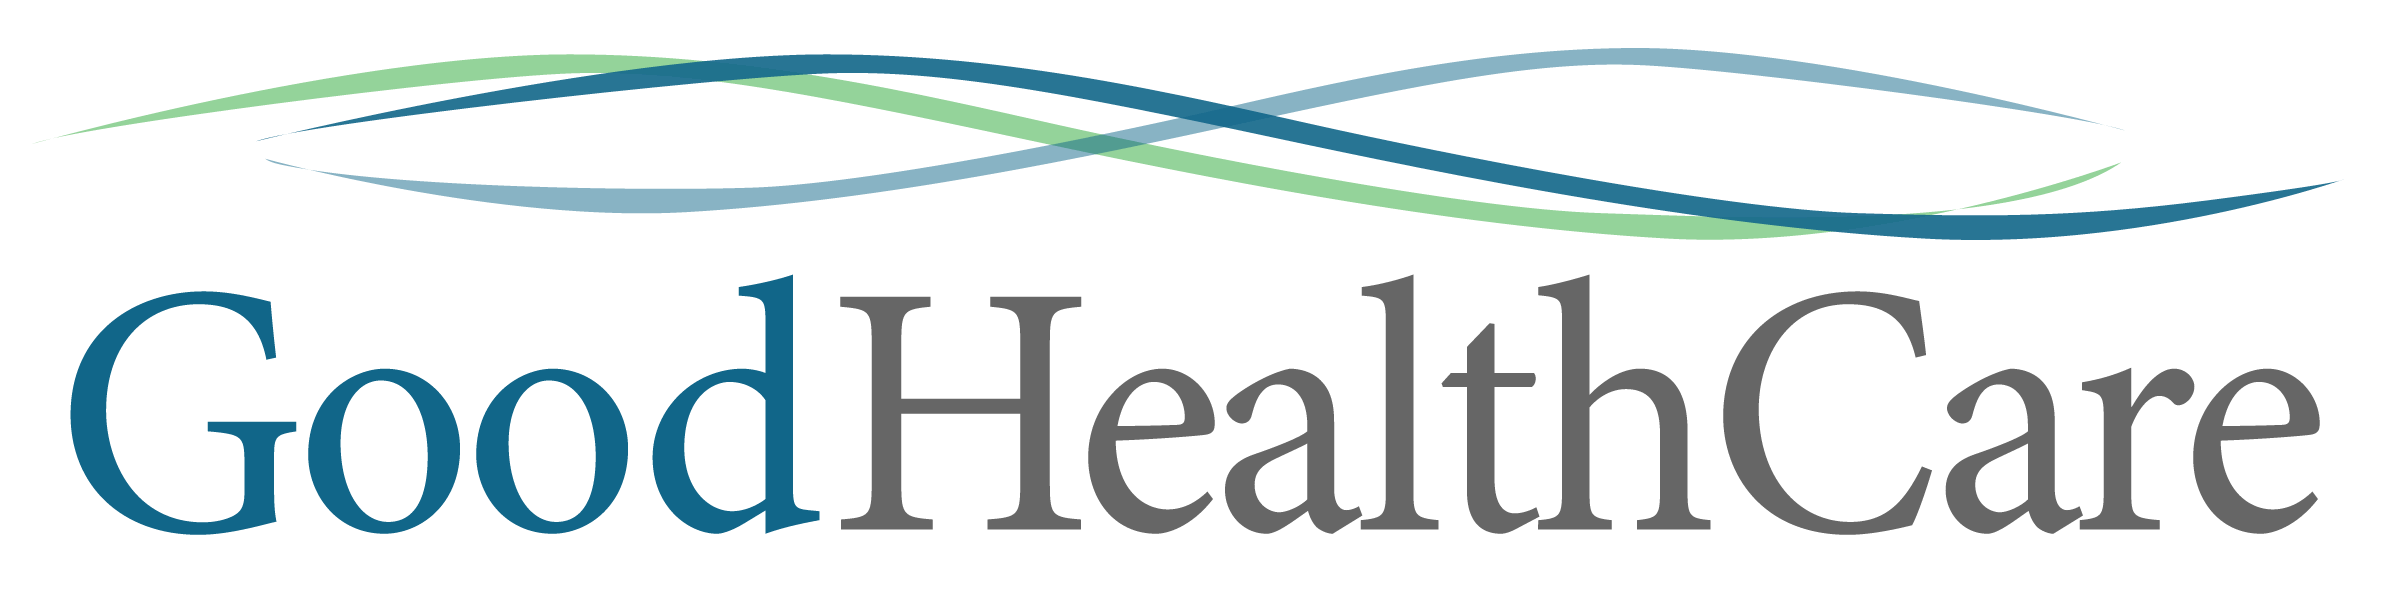 Good HealthCare logo